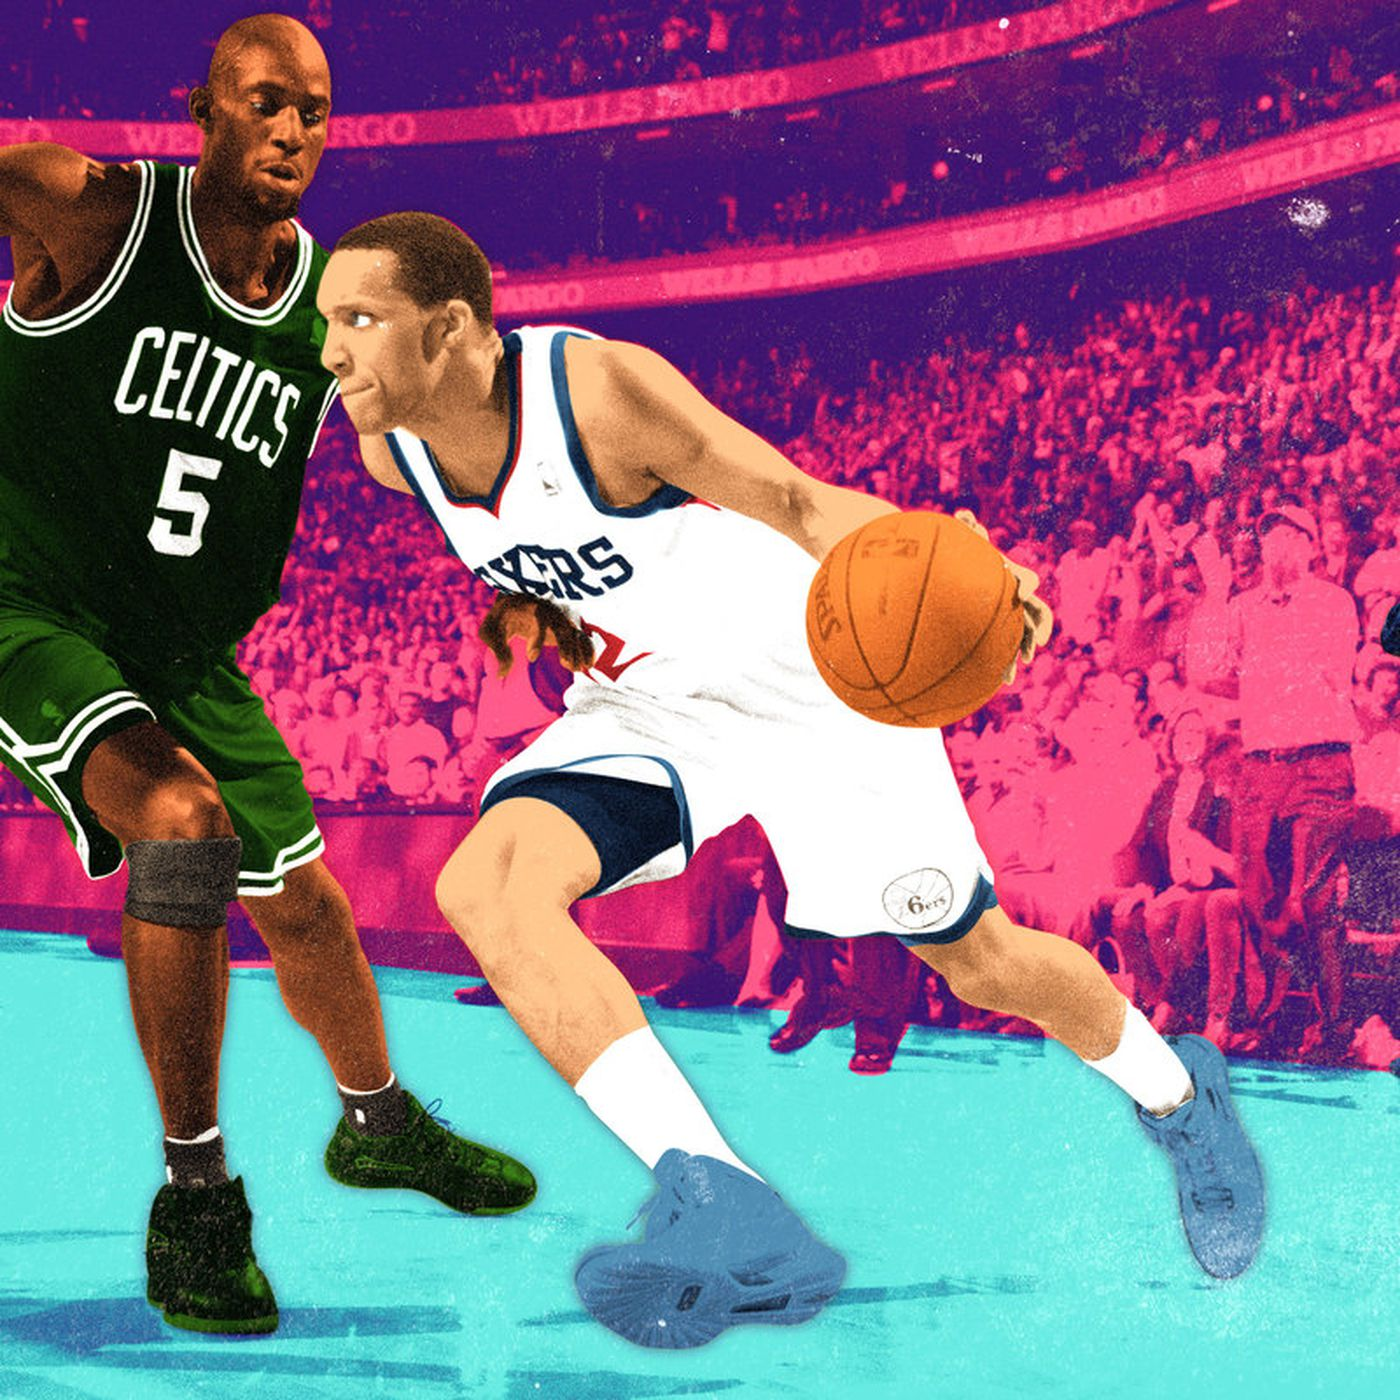 What Happened In The Celtics Sixers Series Featured In Uncut Gems The Ringer